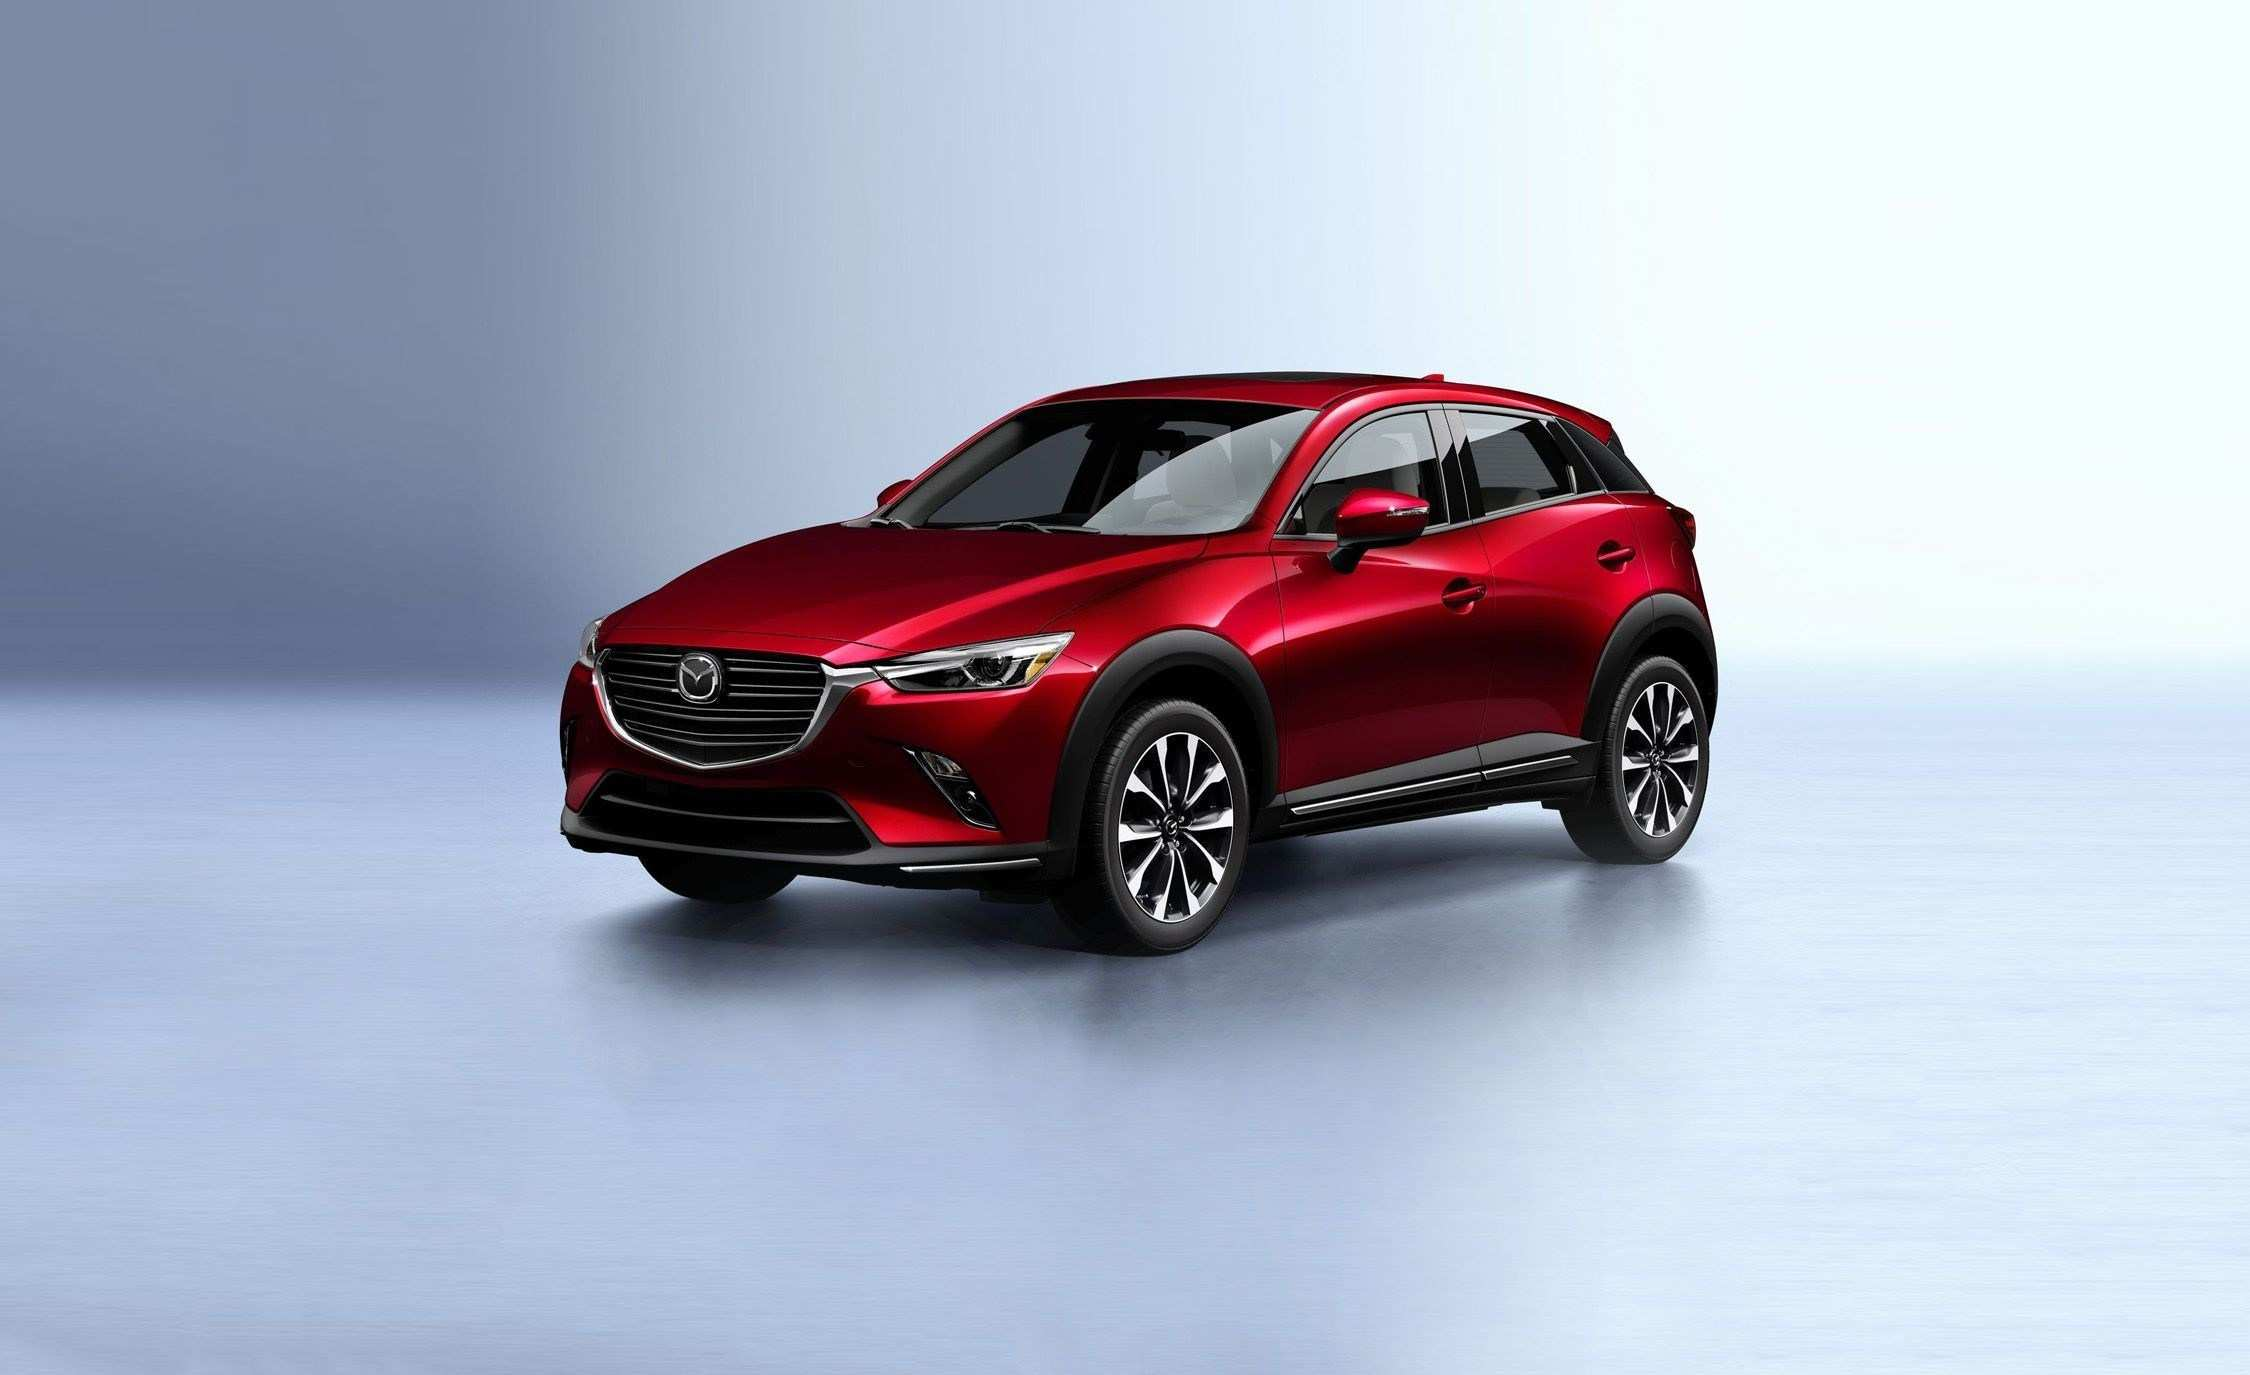 40 All New Mazdas New Engine For 2019 Review Specs And Release Date Rumors for Mazdas New Engine For 2019 Review Specs And Release Date